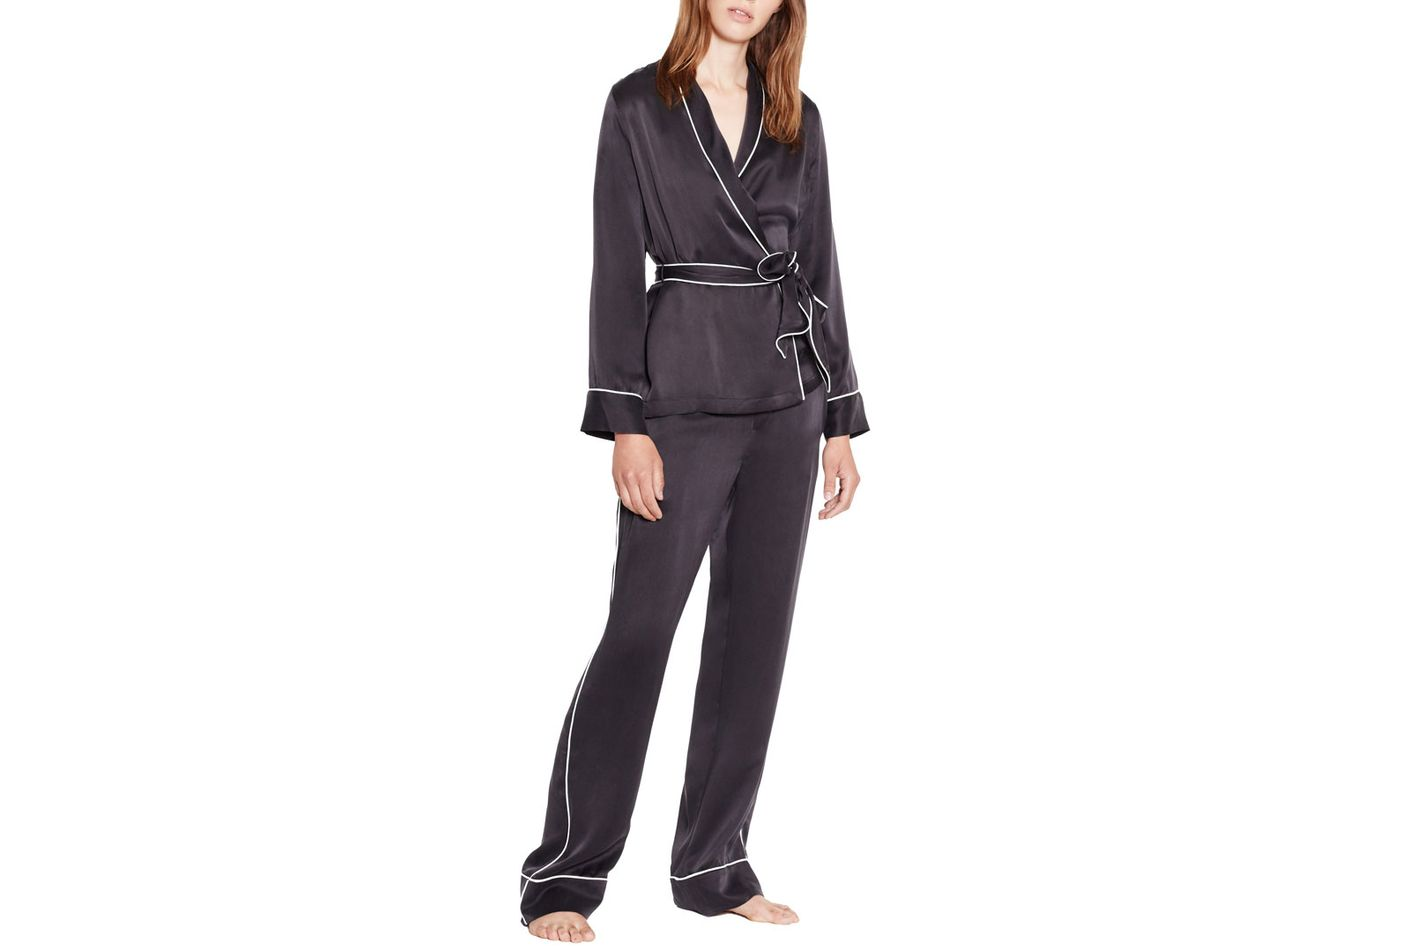 Equipment 'Odette' Satin Pajama Set